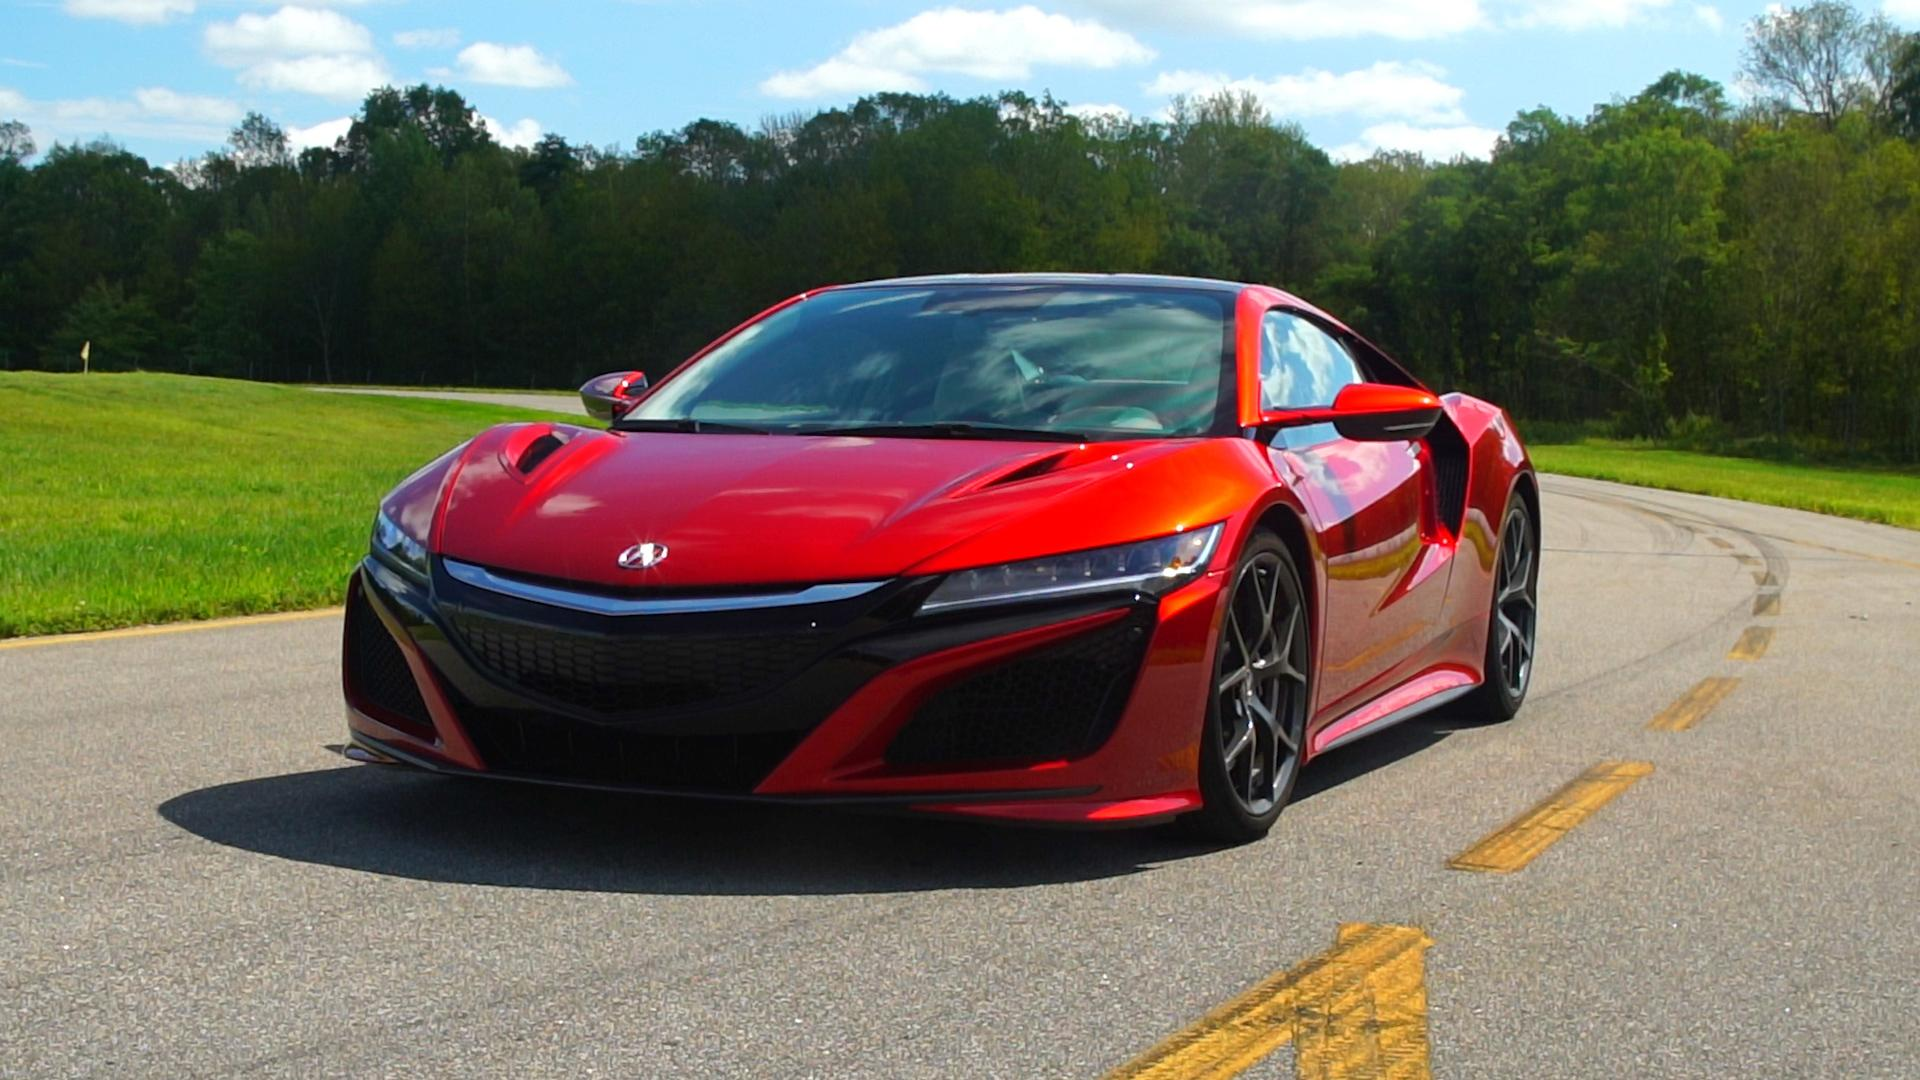 2017 Acura Nsx Hybrid Is The Friendly Supercar Consumer Reports